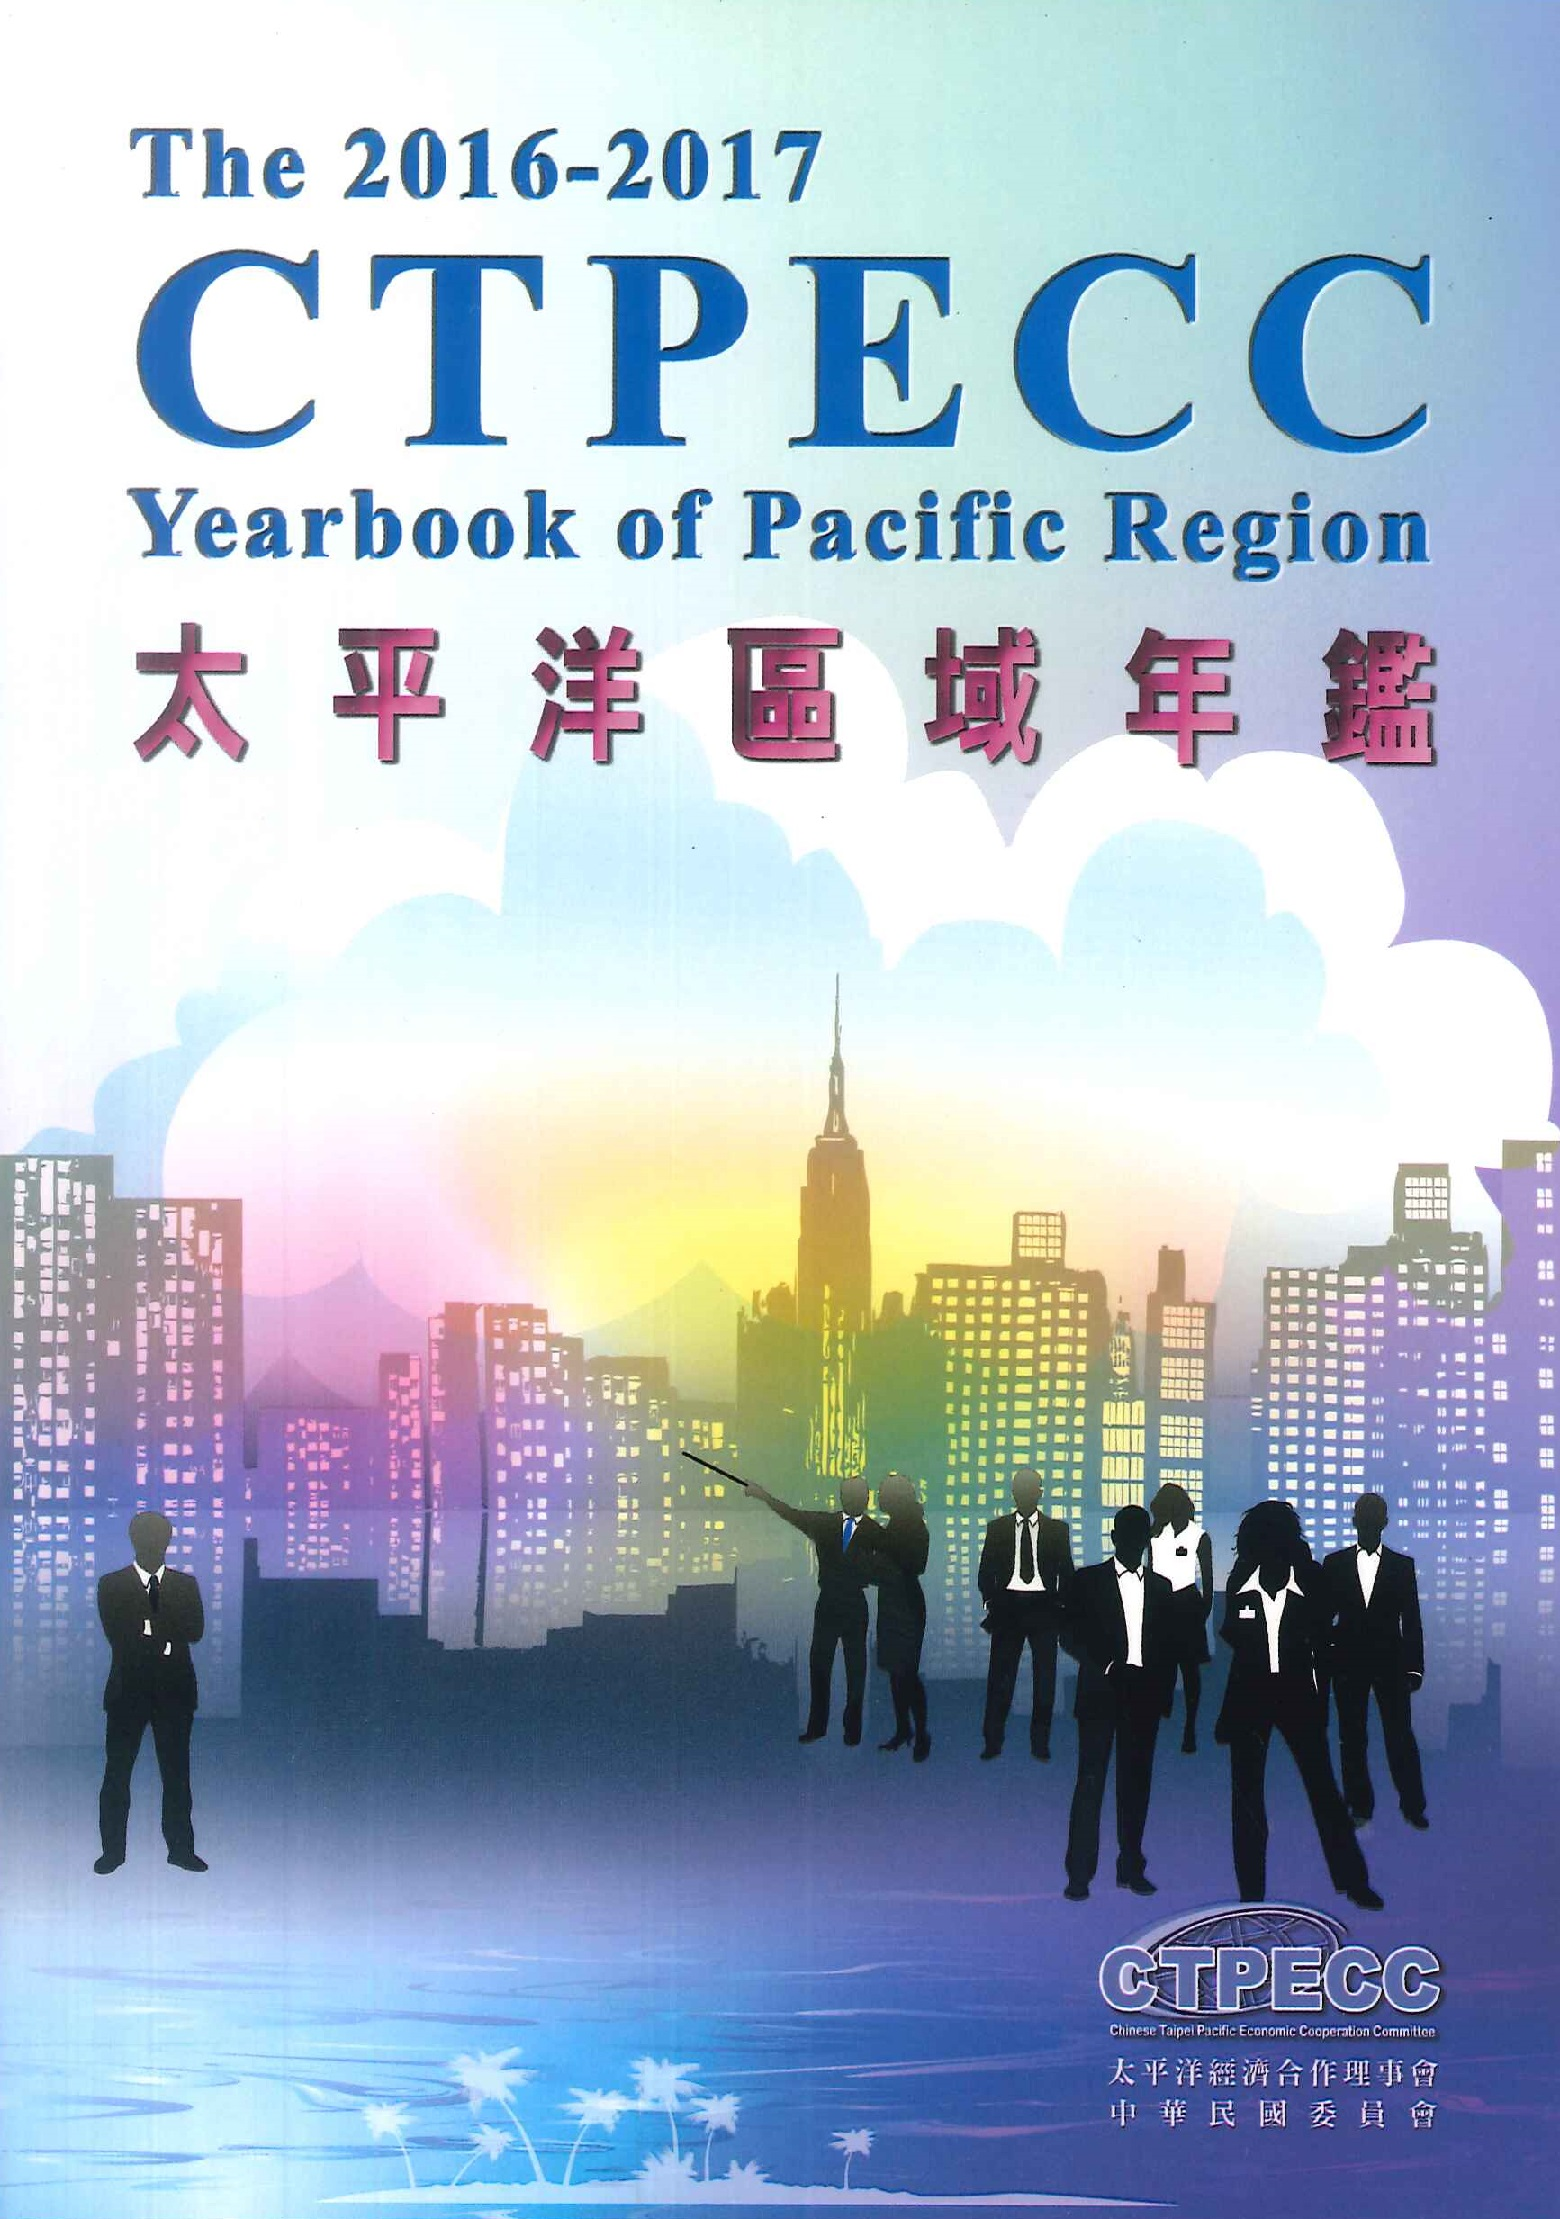 太平洋區域年鑑=CTPECC yearbook of Pacific region